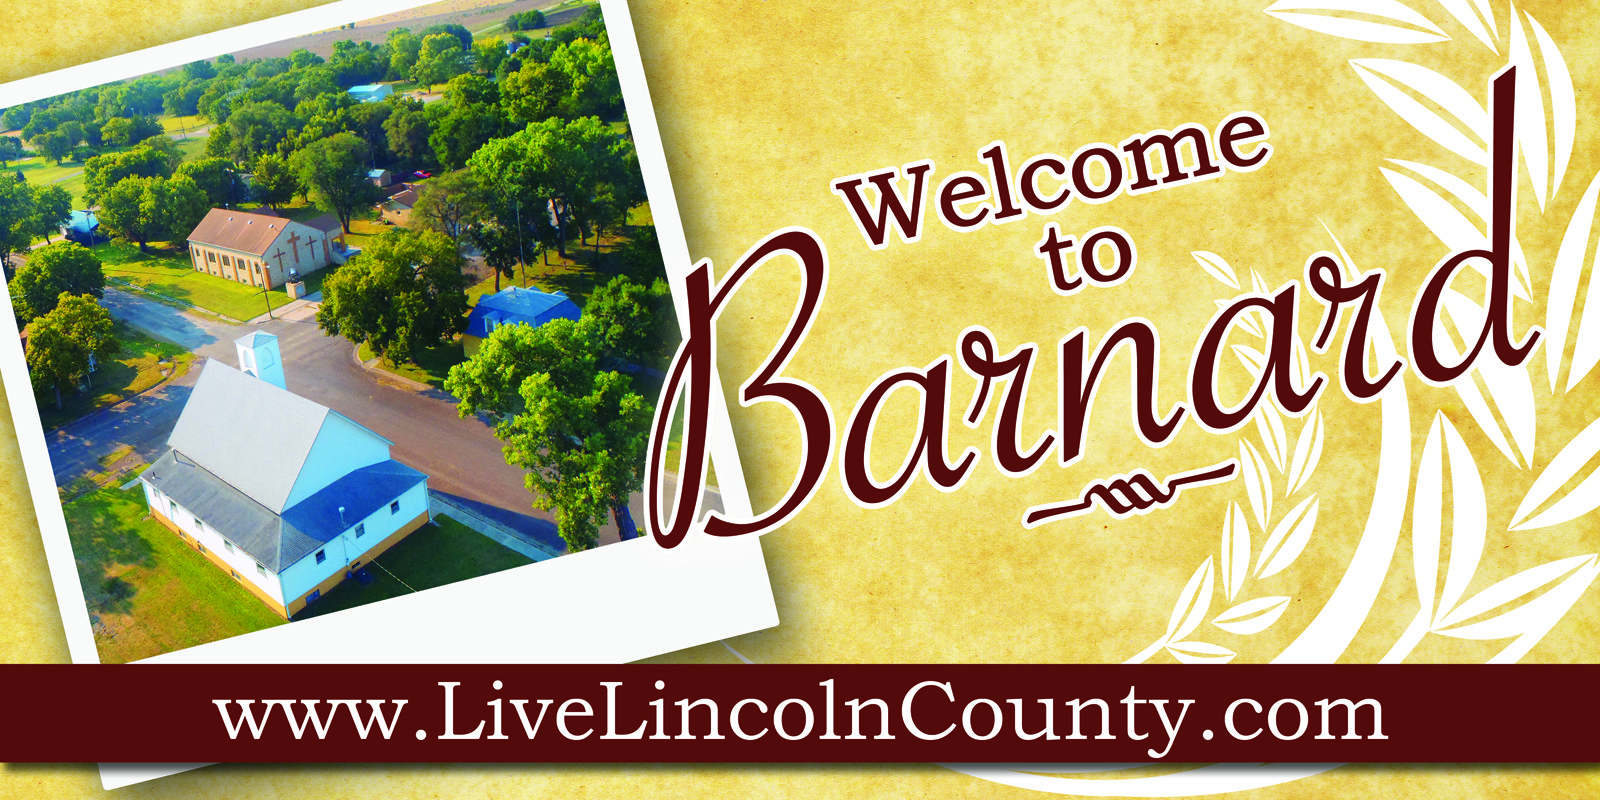 Barnard, KS, 10 miles north and 6 miles east of Lincoln, KS, is a small community in Salt Creek and Scott Townships in Lincoln County.